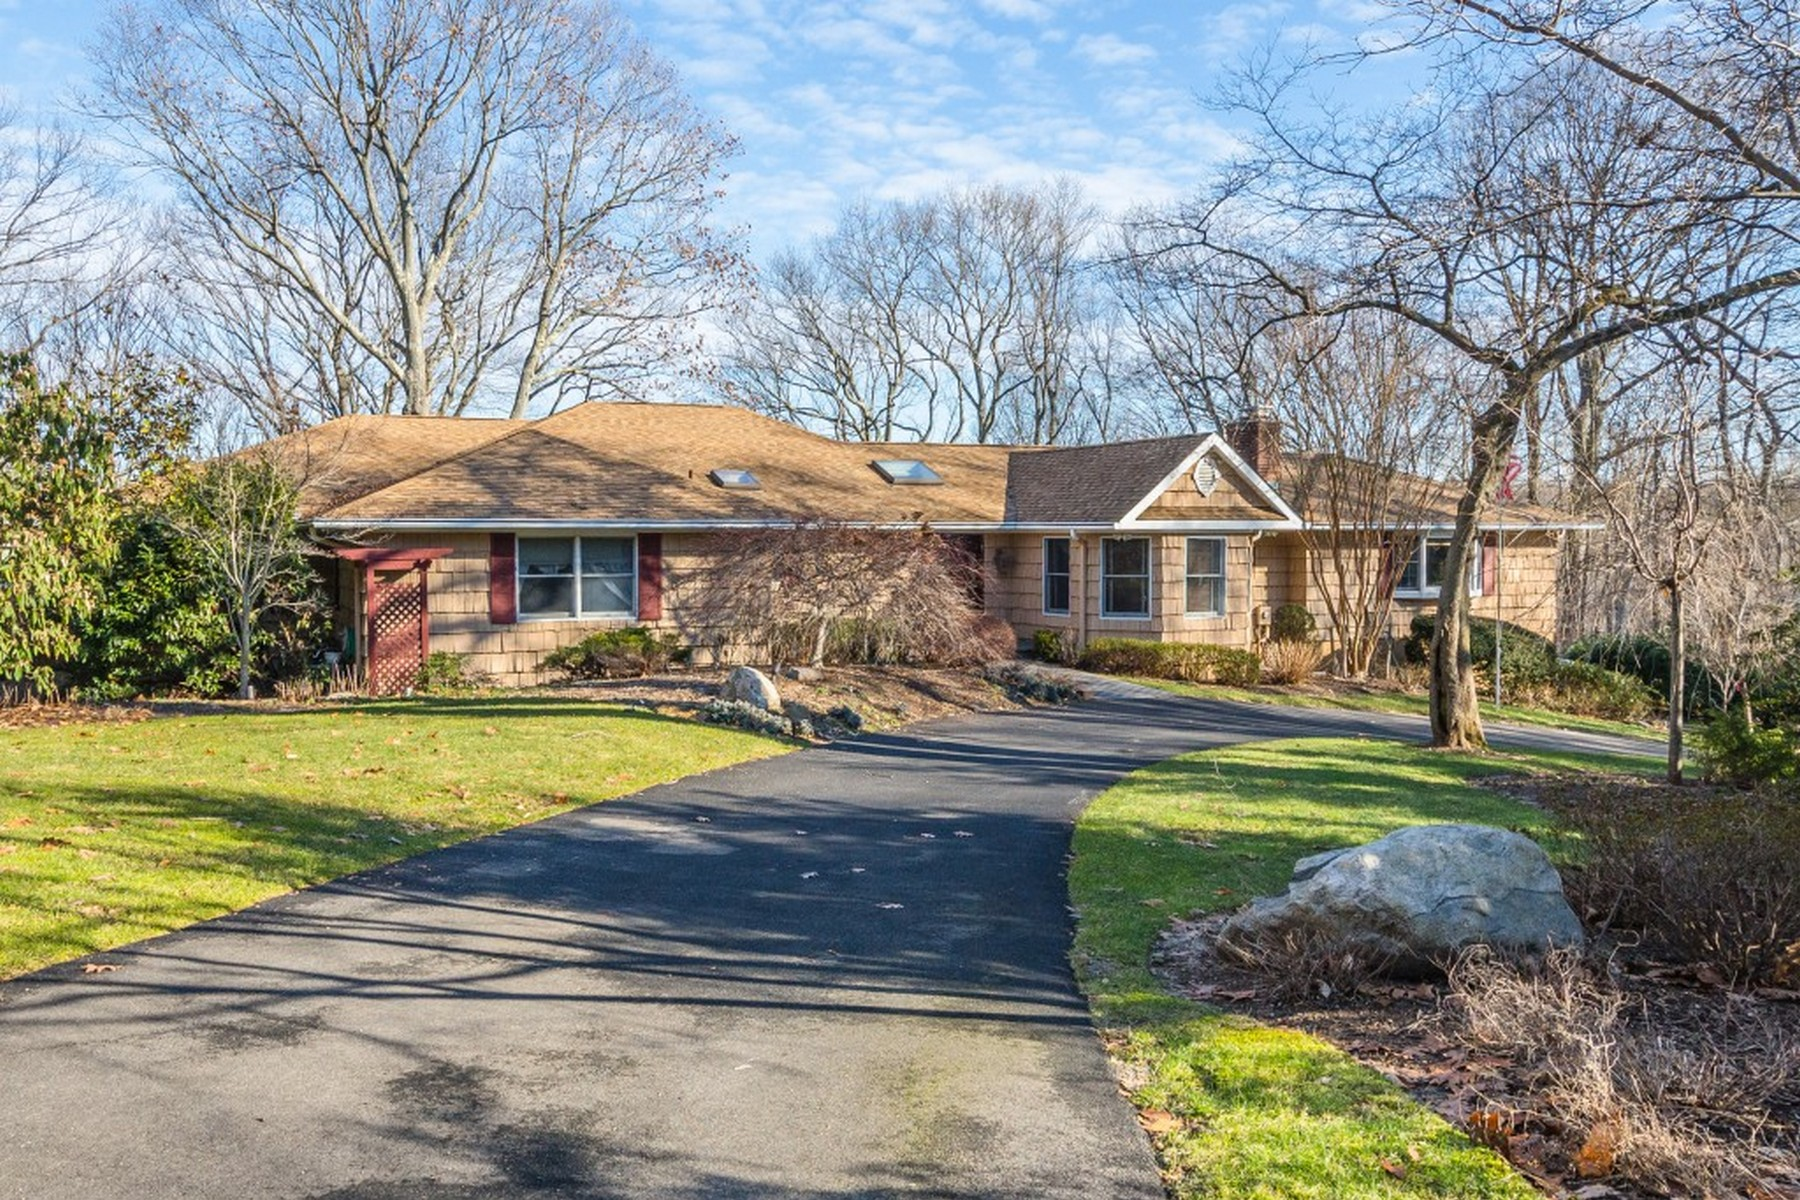 Single Family Home for Sale at Exp Ranch 11 Beaver Dr Locust Valley, New York 11560 United States